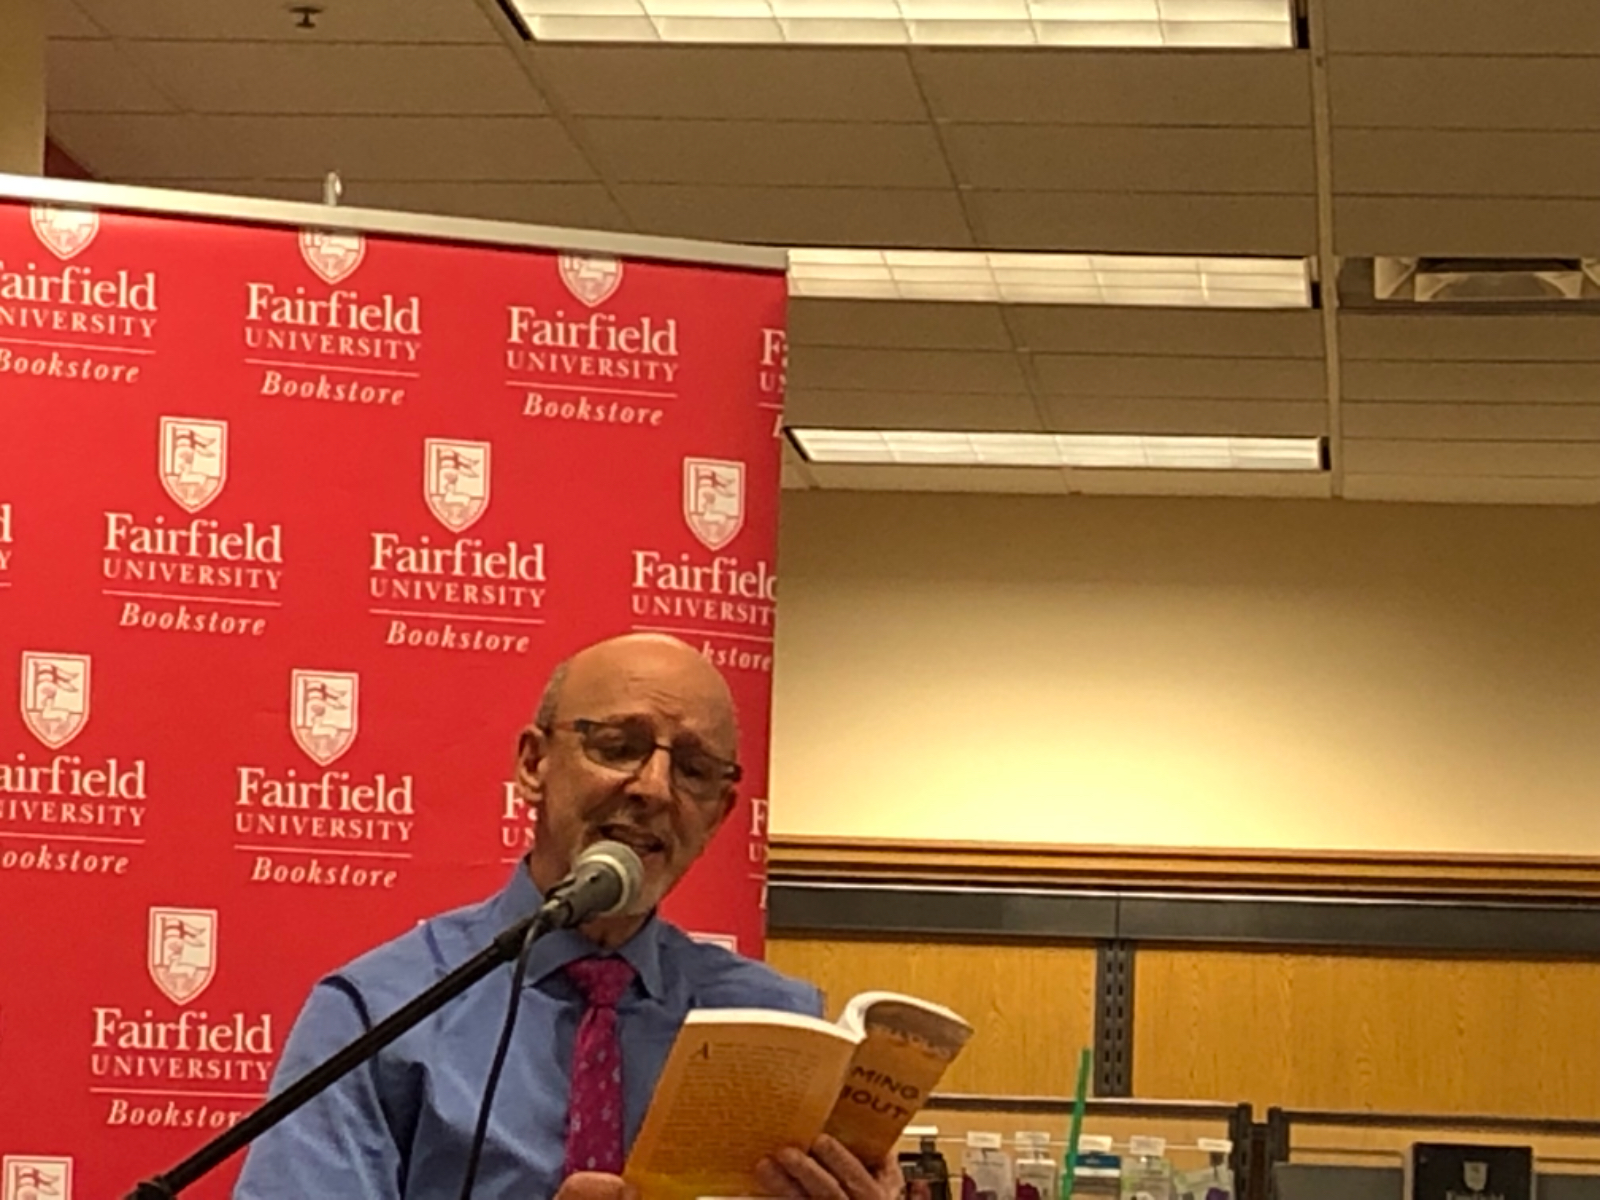 Author event at the Fairfield University Bookstore in Connecticut